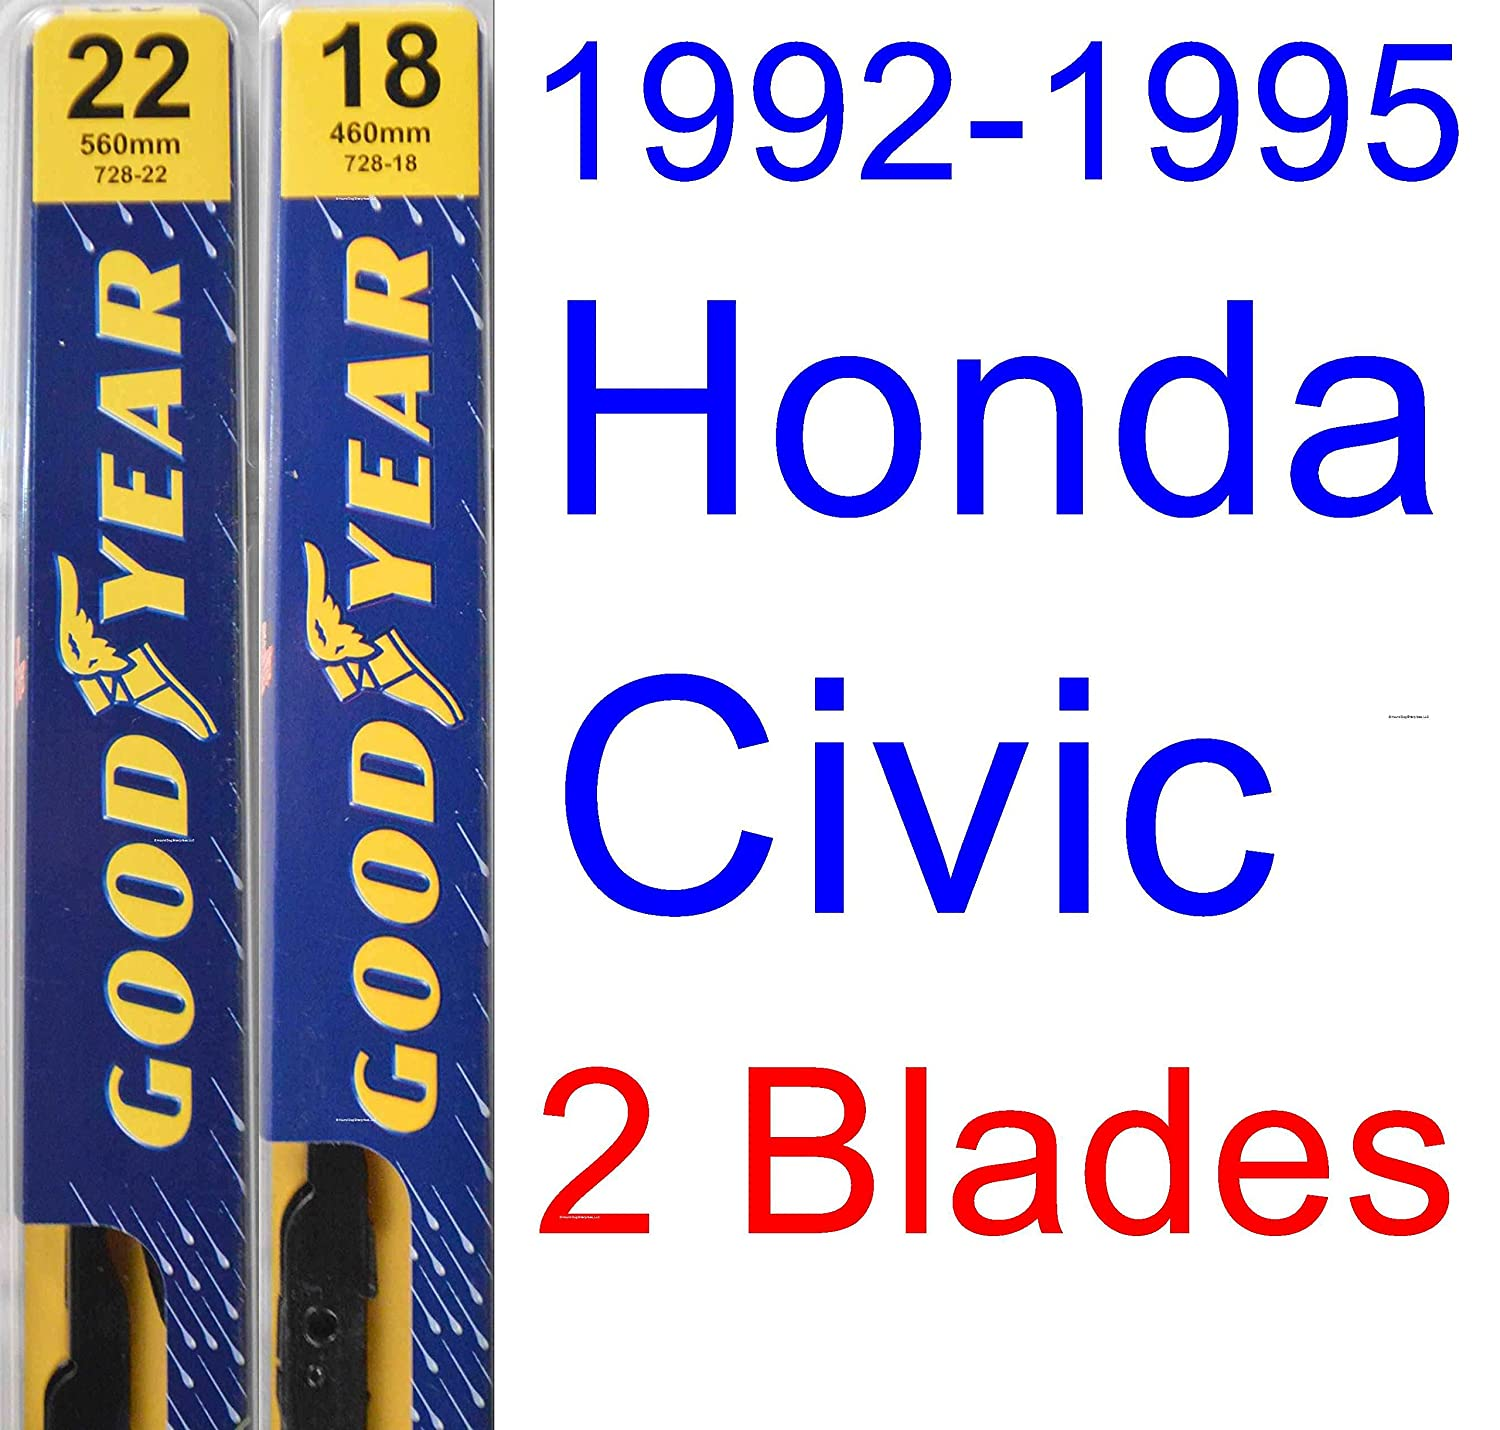 1992 1995 Honda Civic Replacement Wiper Blade Set Kit Windshield Of 2 Blades Goodyear Premium 19931994 Automotive